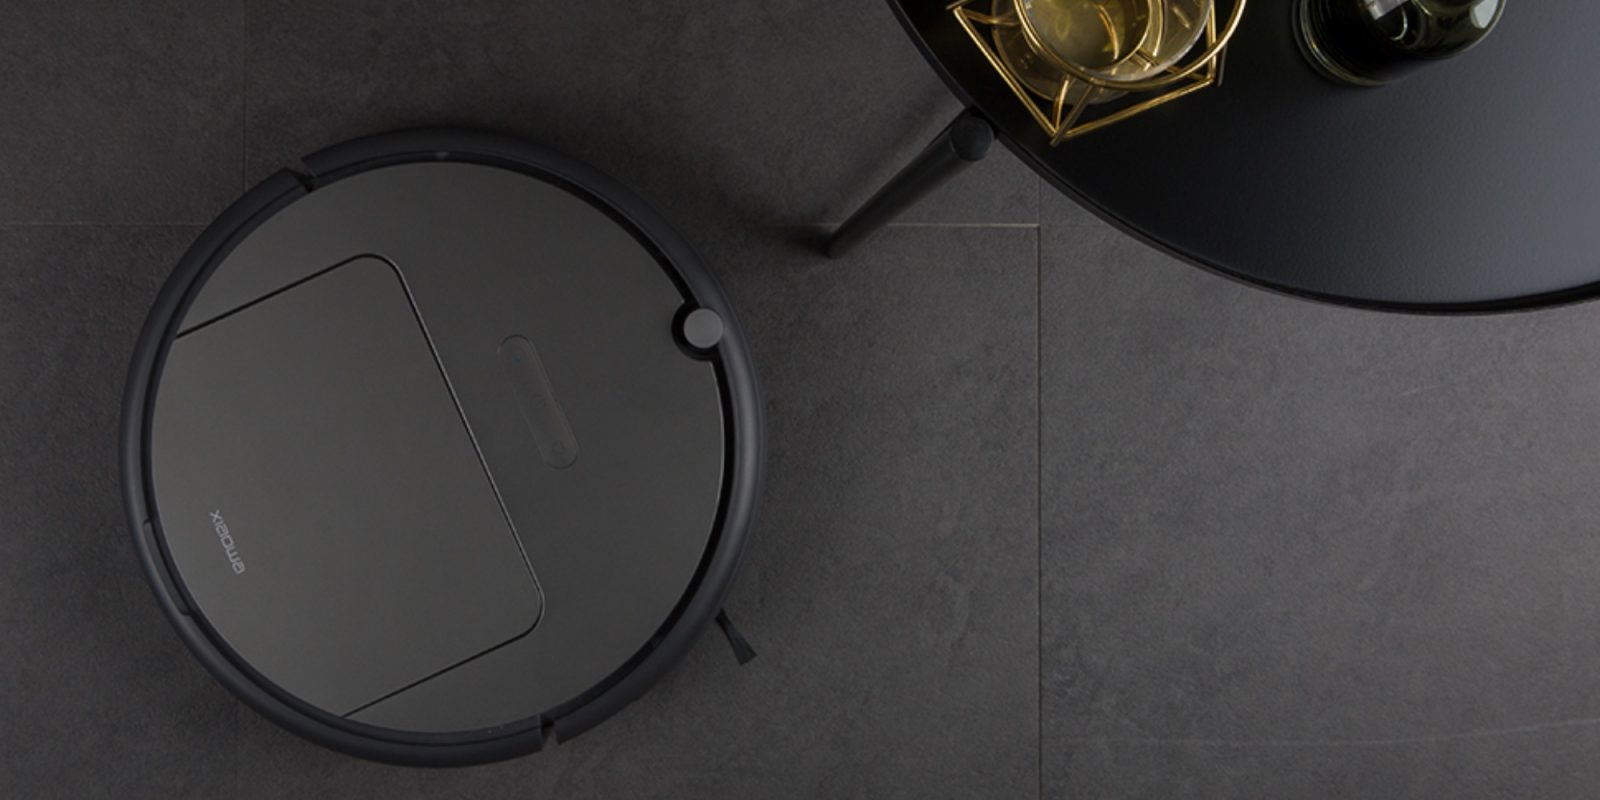 Save $70 and upgrade your home with Roborock's Robot Vacuum and Mop at $280